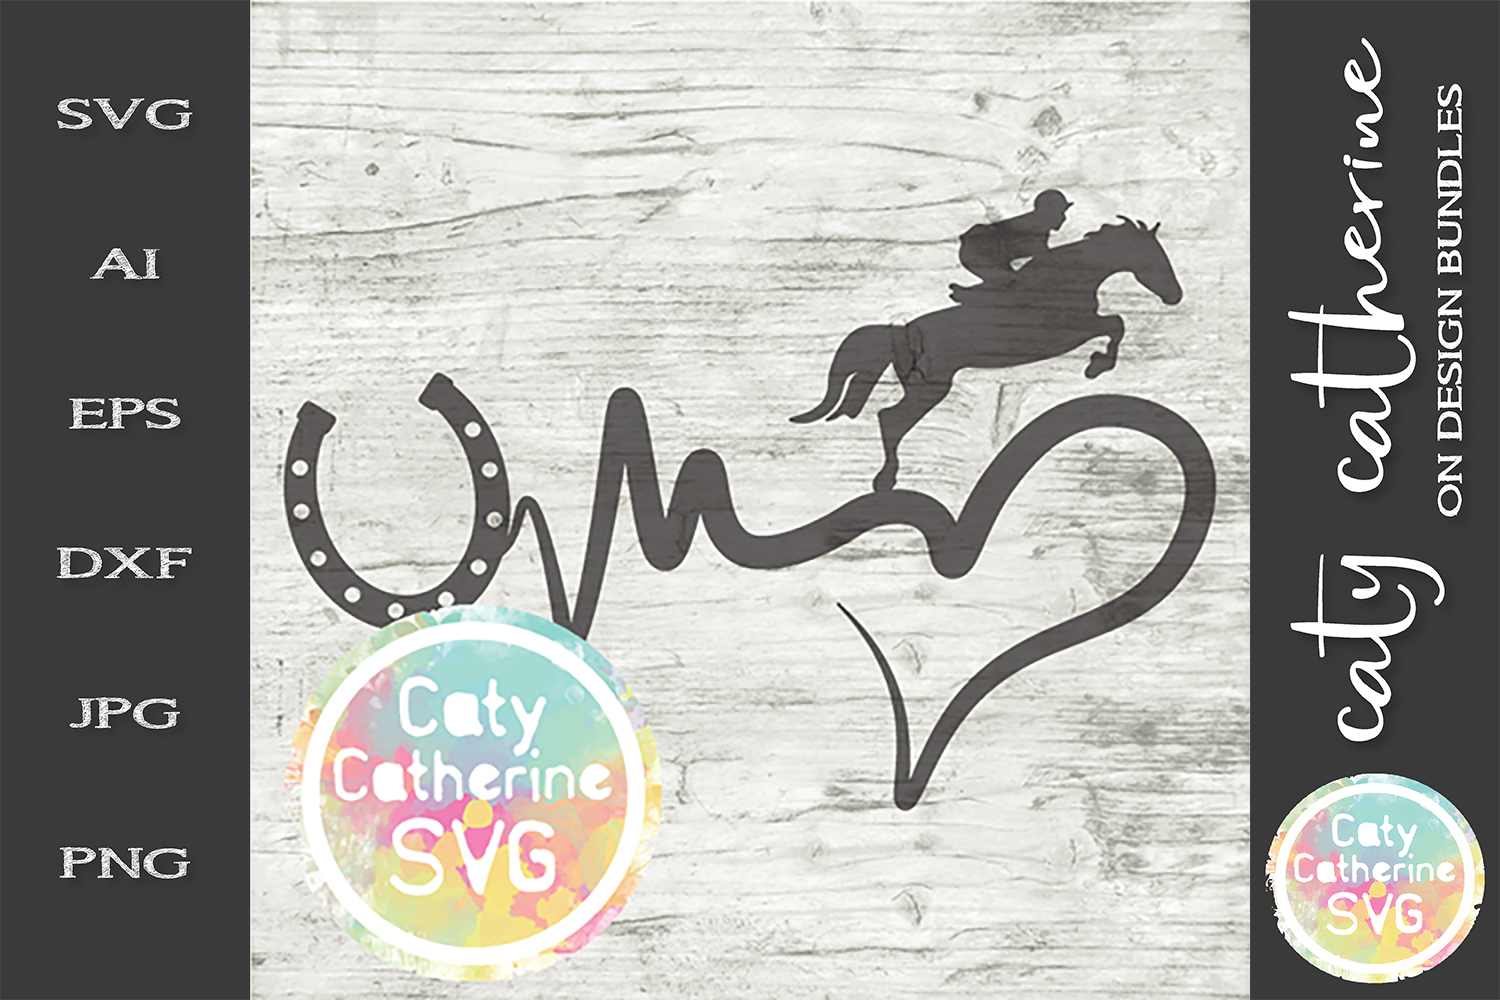 Heartbeat Love Heart Horse Riding SVG Cut File example image 1